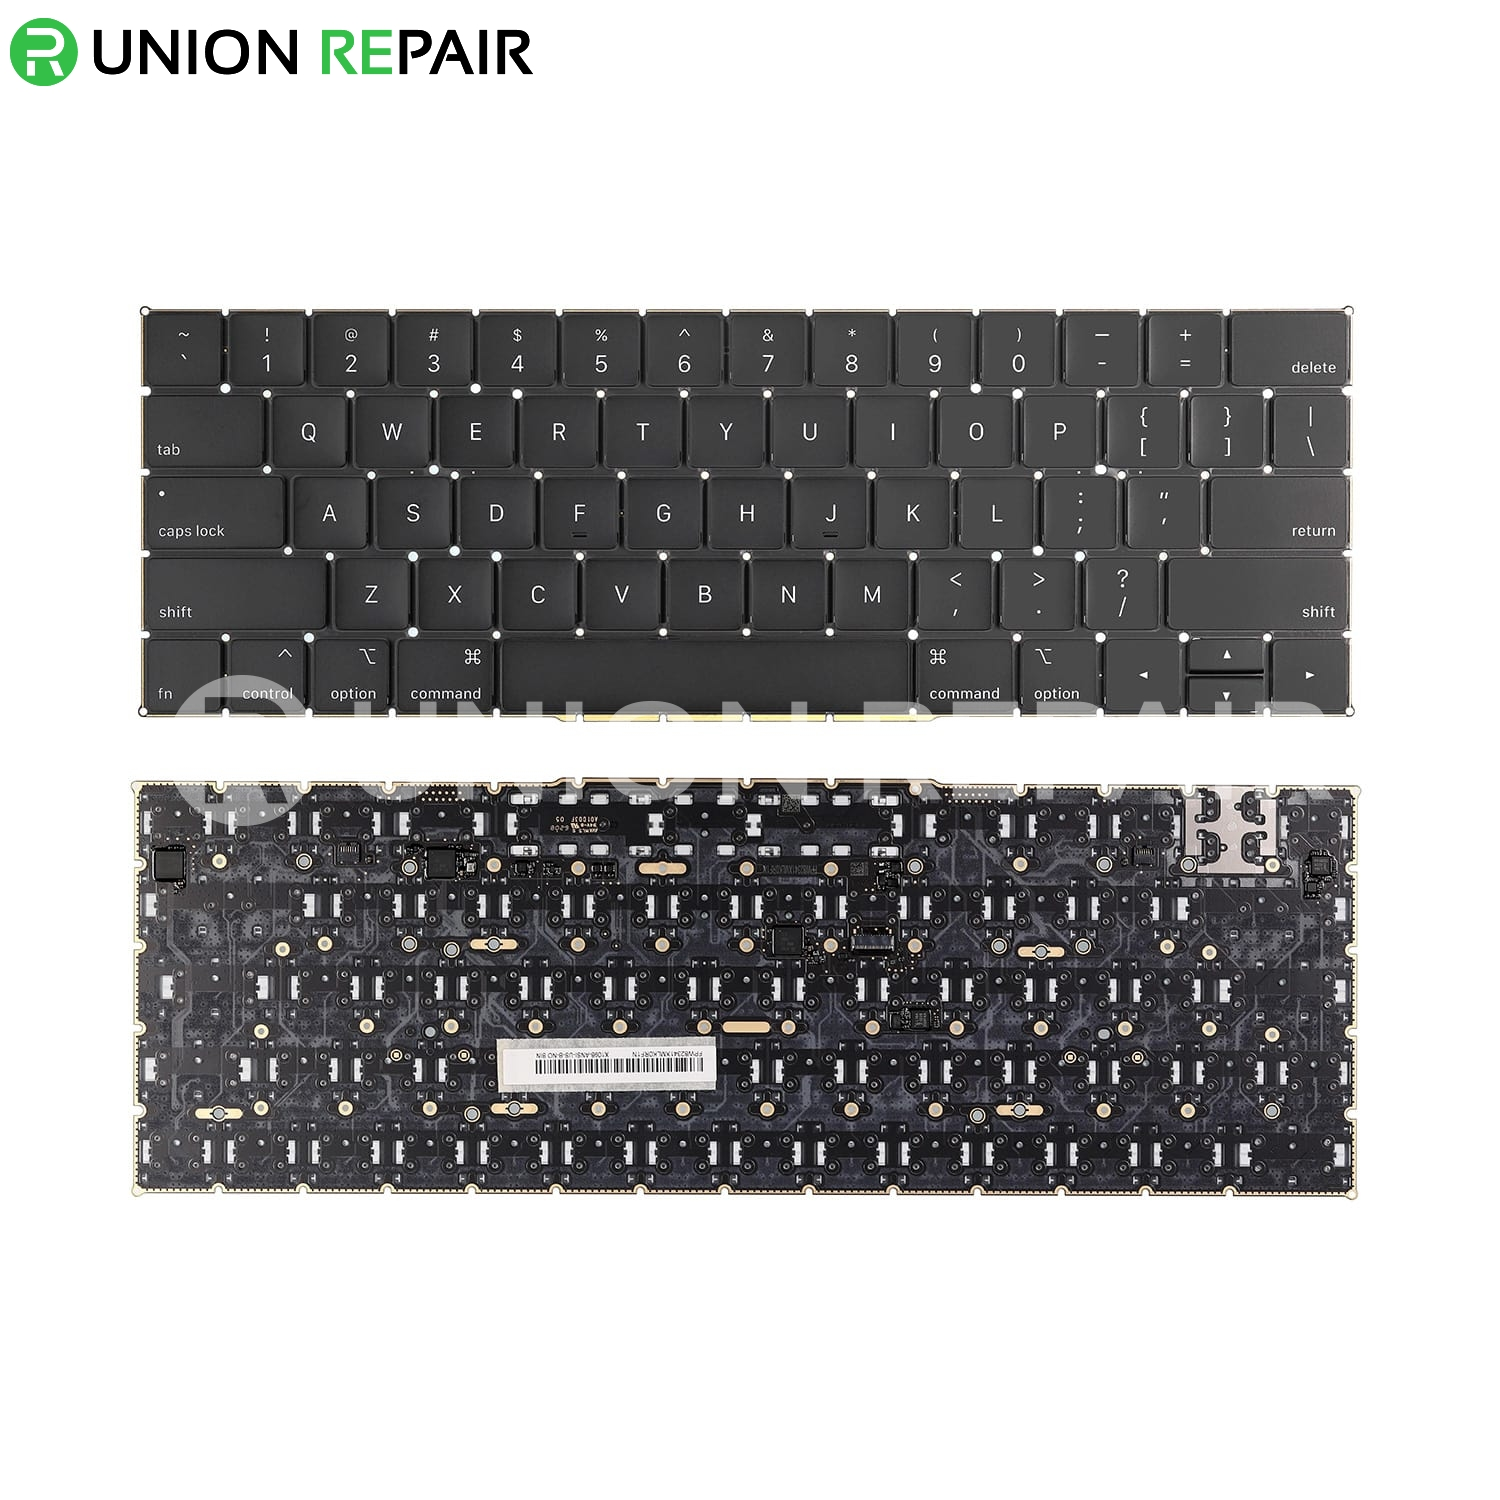 Keyboard (US English) for MacBook Pro A1989/A1990 (Mid 2018)